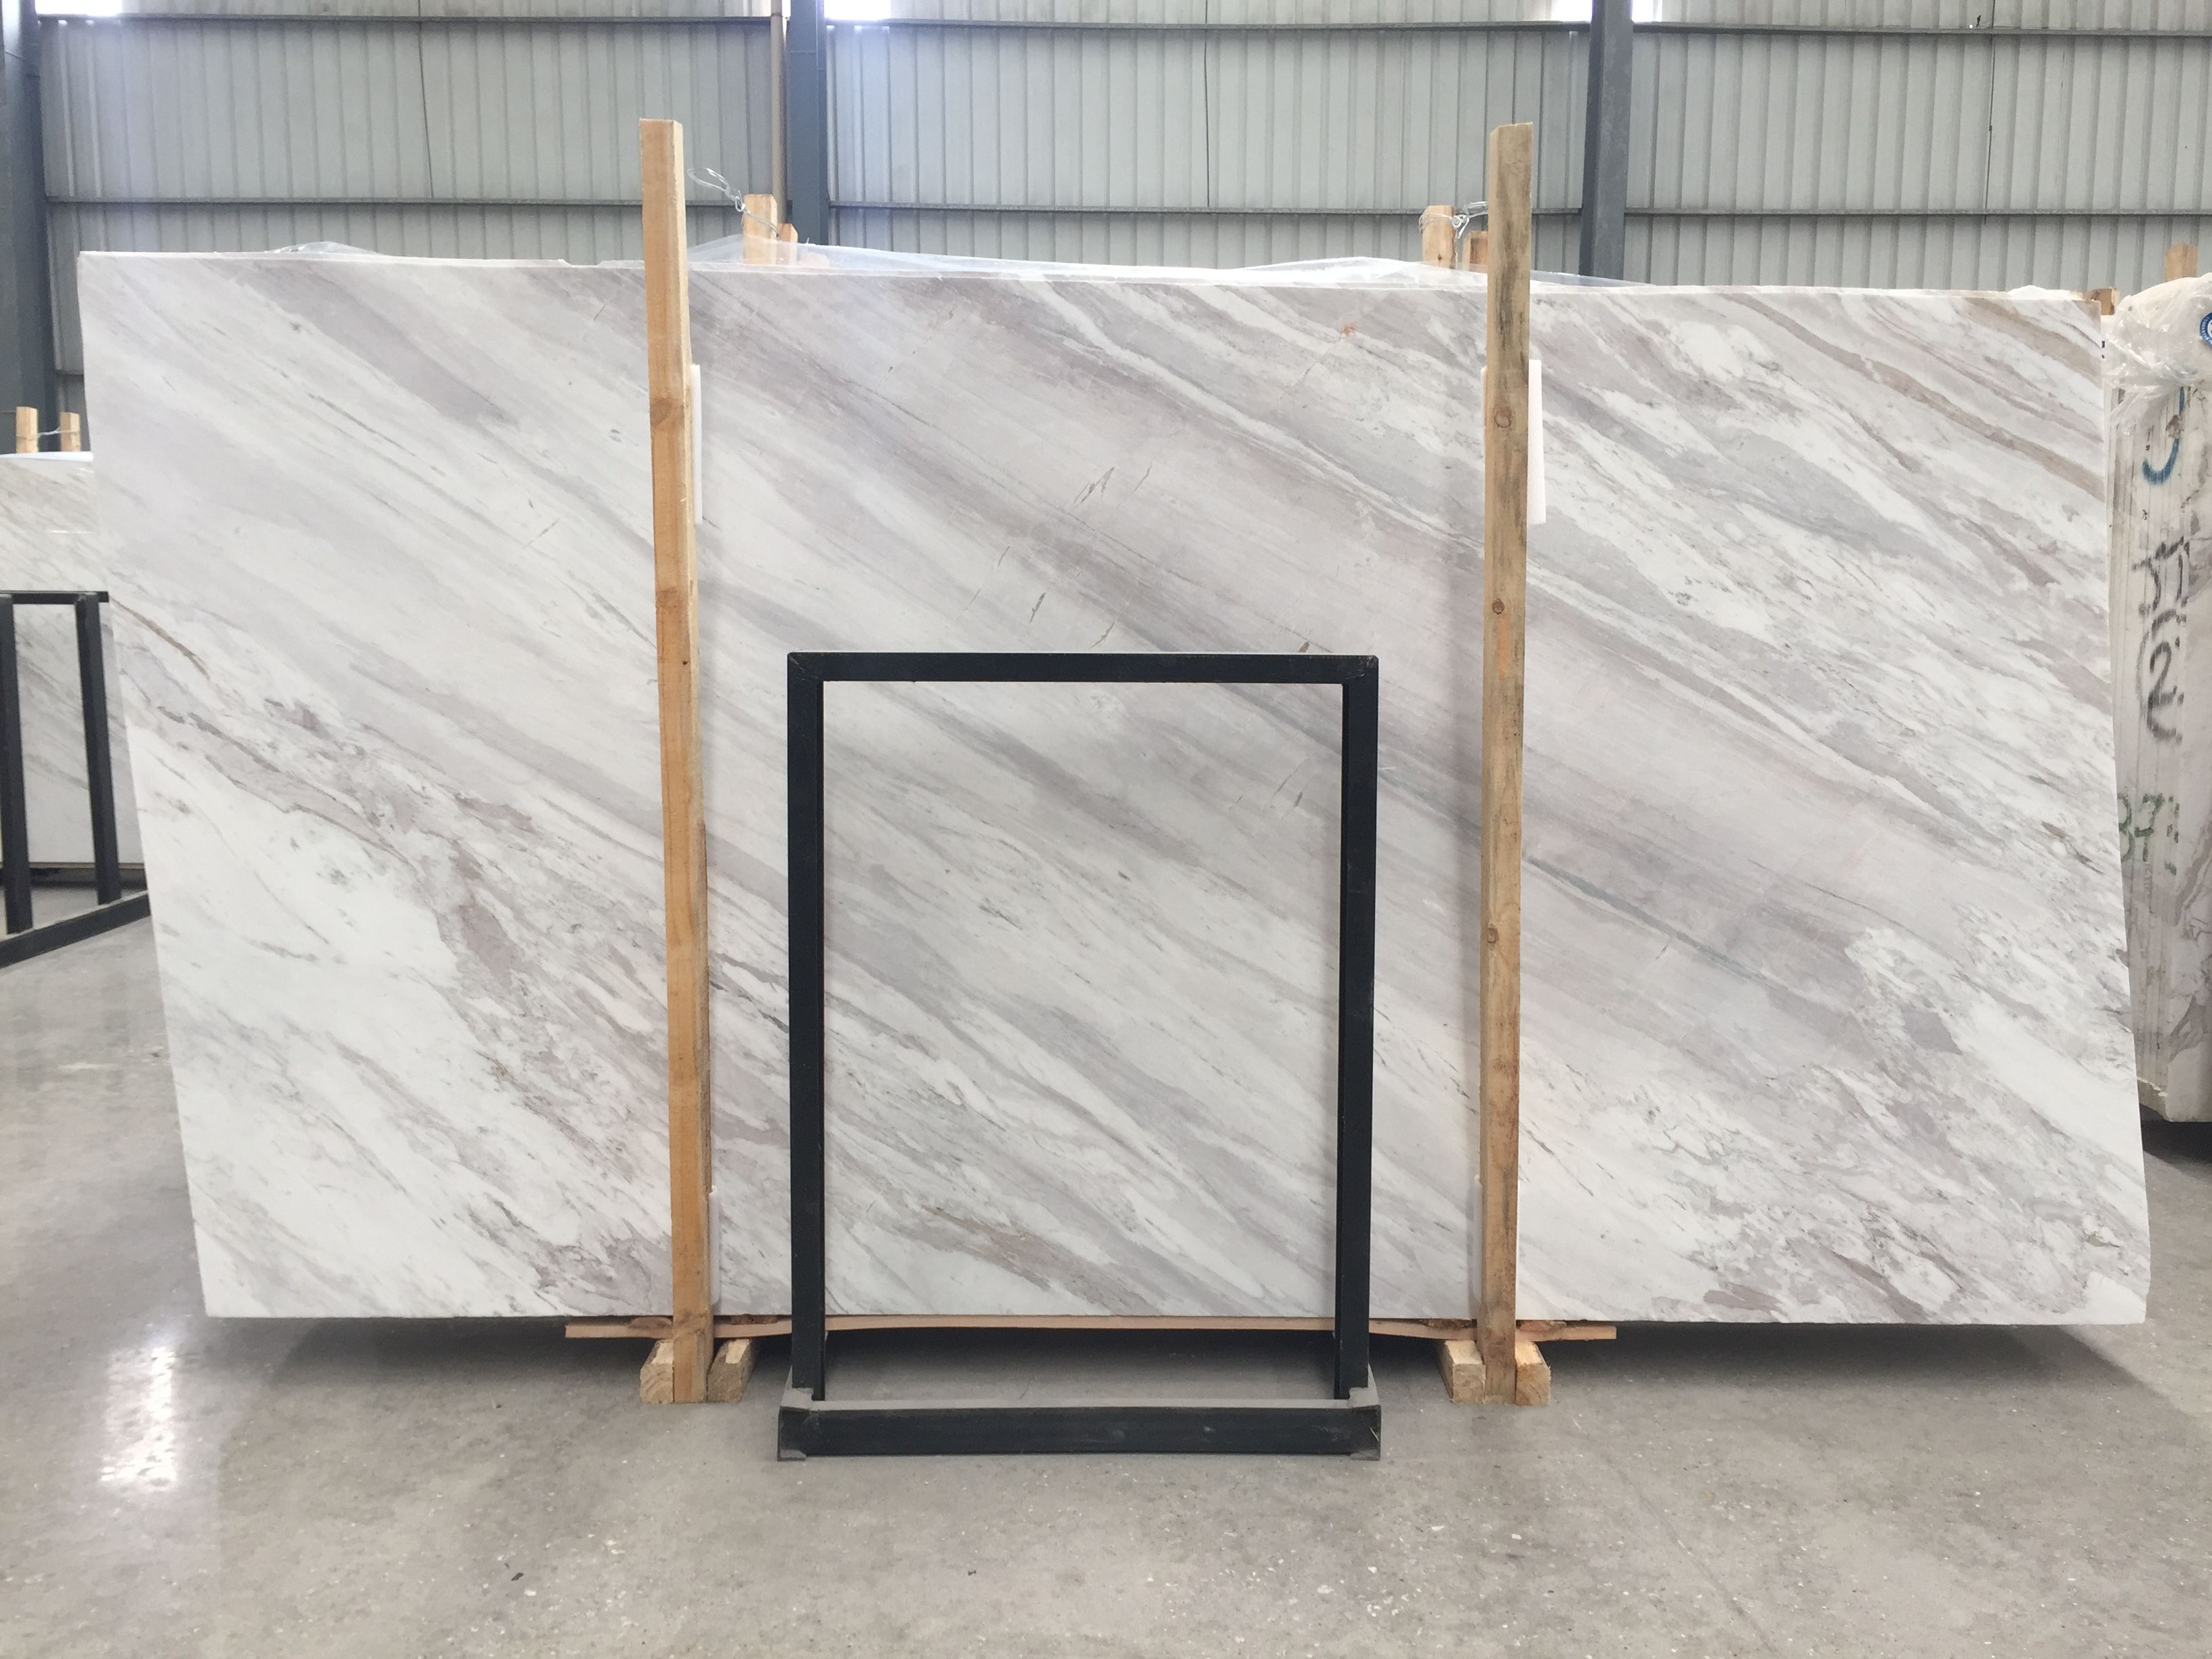 Volakas Marble Slab Carlzhang11@outlook.com